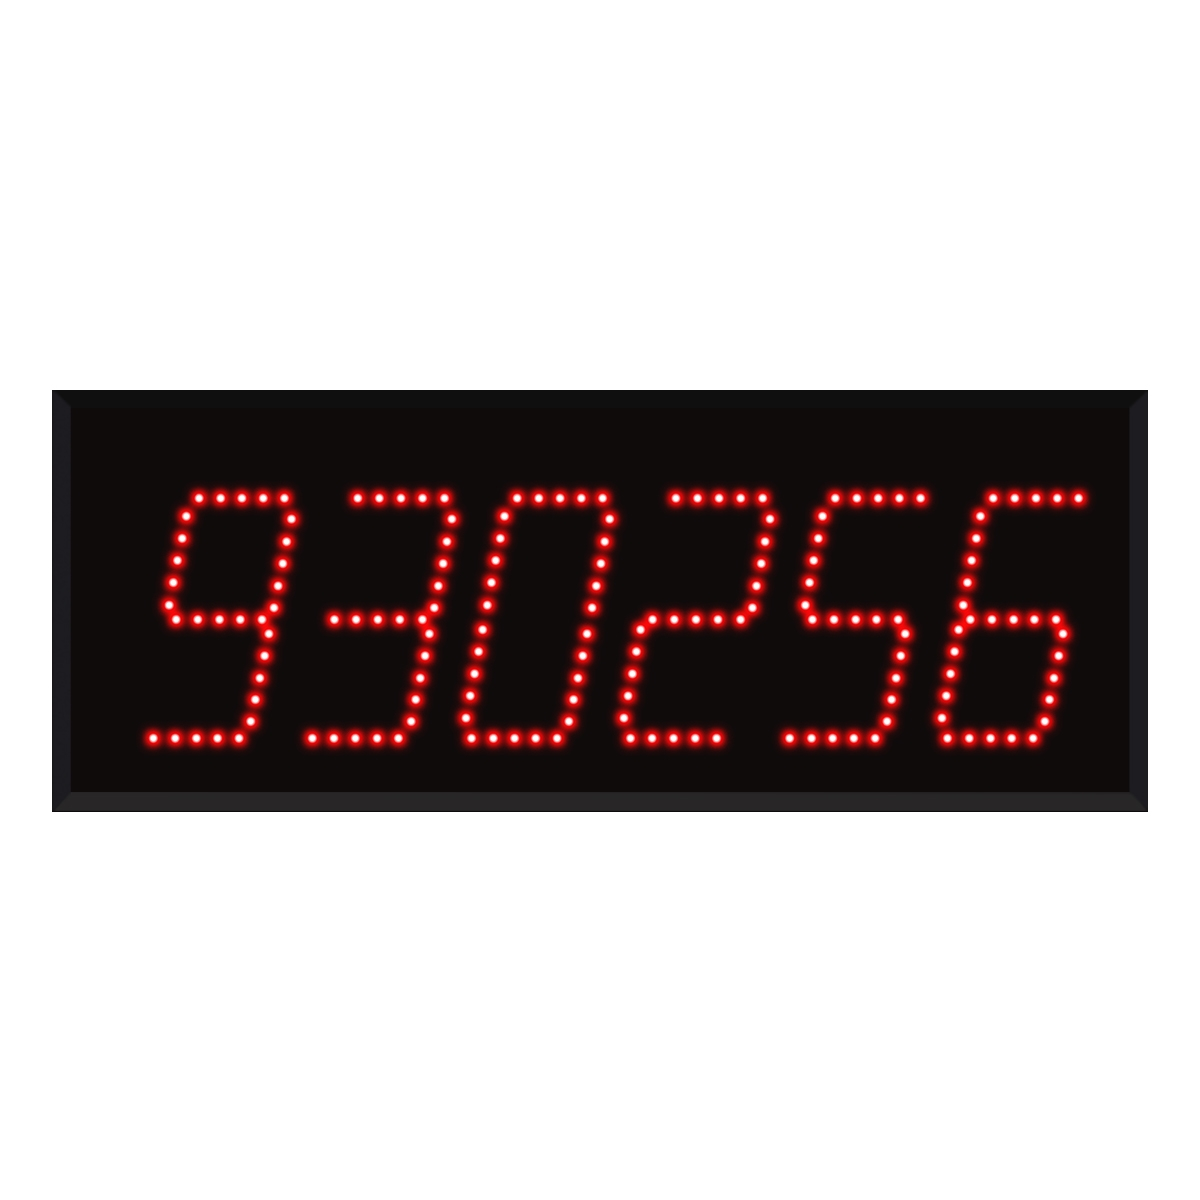 Model 960 (6-Digit) Visual-Pager® Display